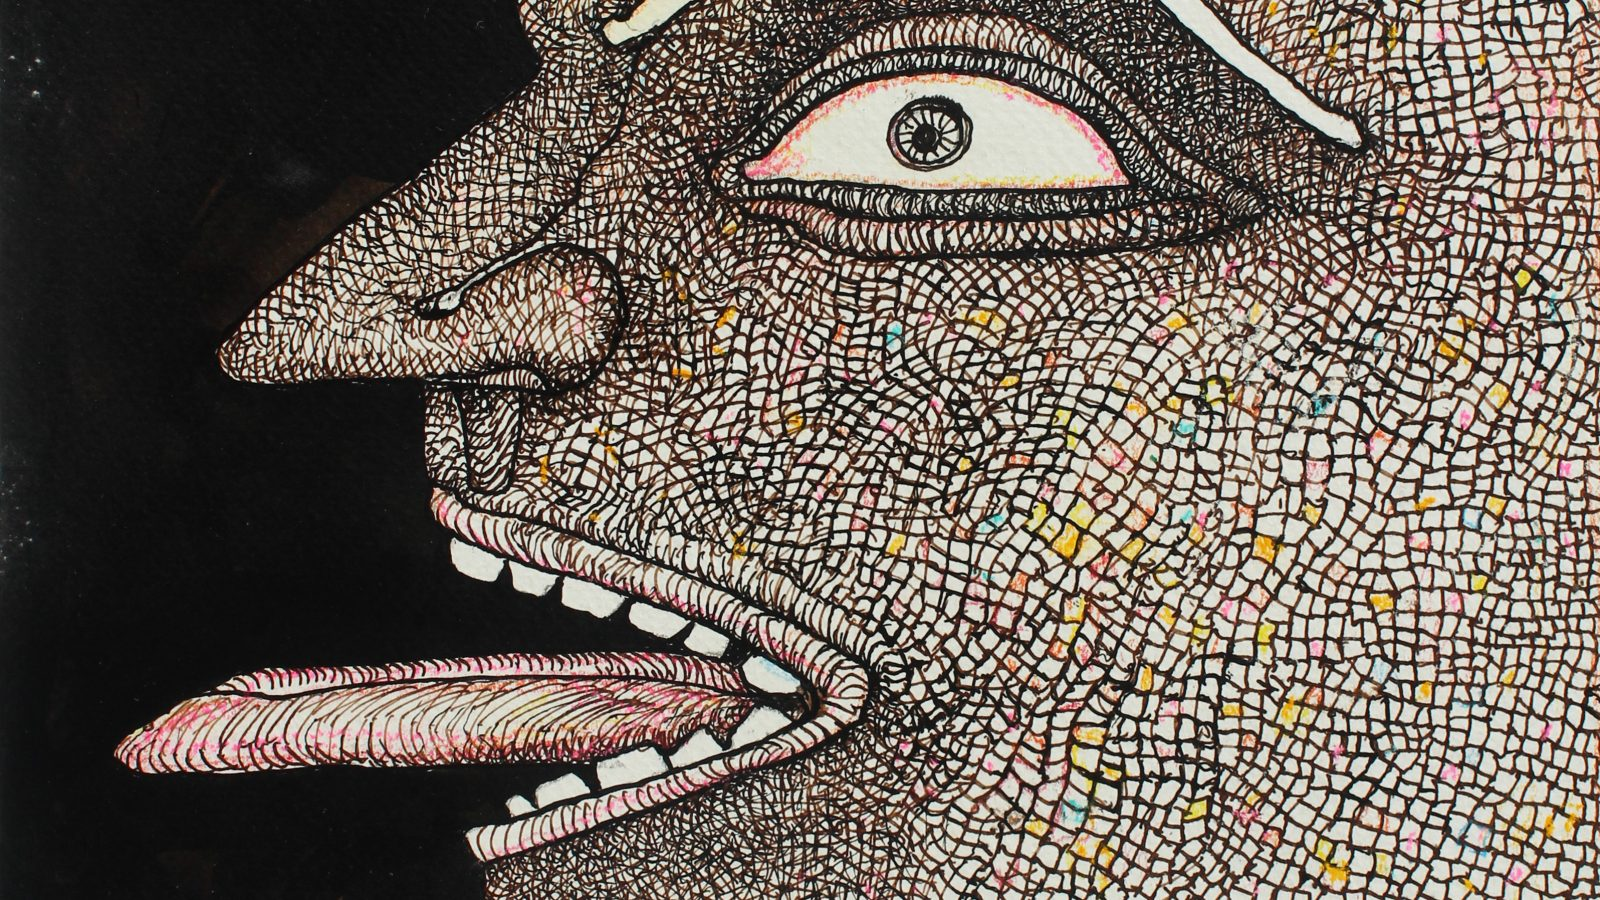 Jogen Chowdhru. Man with protruded tongue, 2013. Courtesy of Emami Art